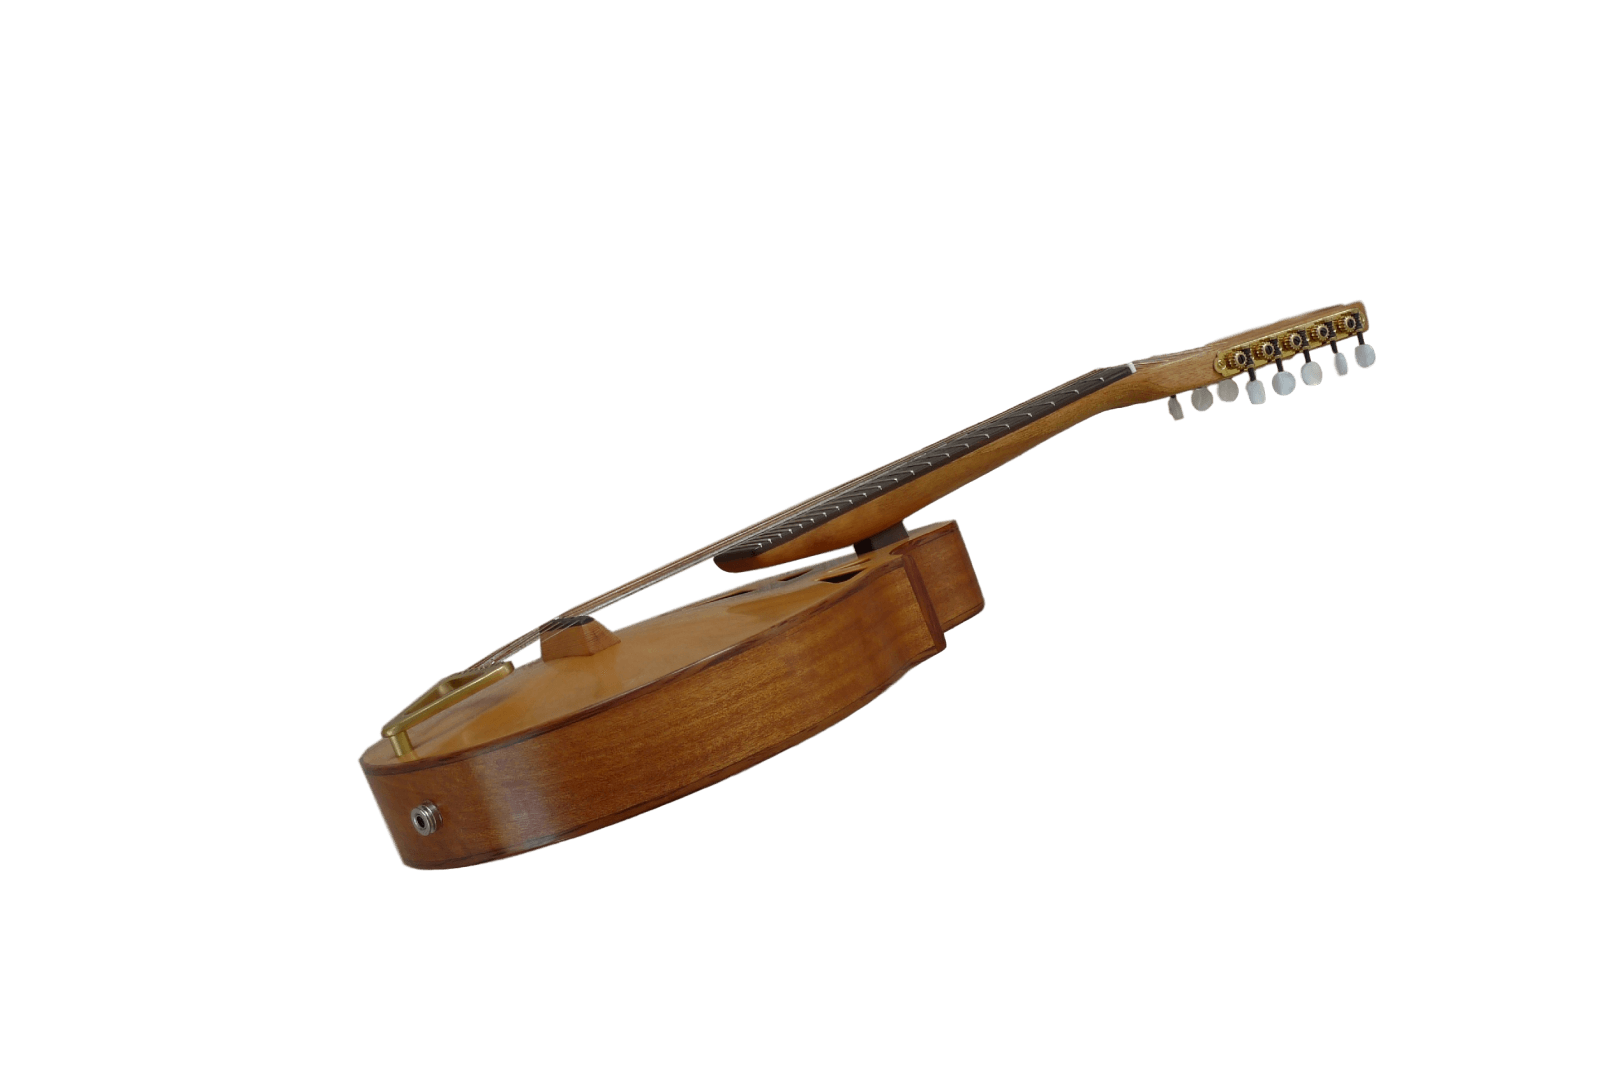 10-string mandolin